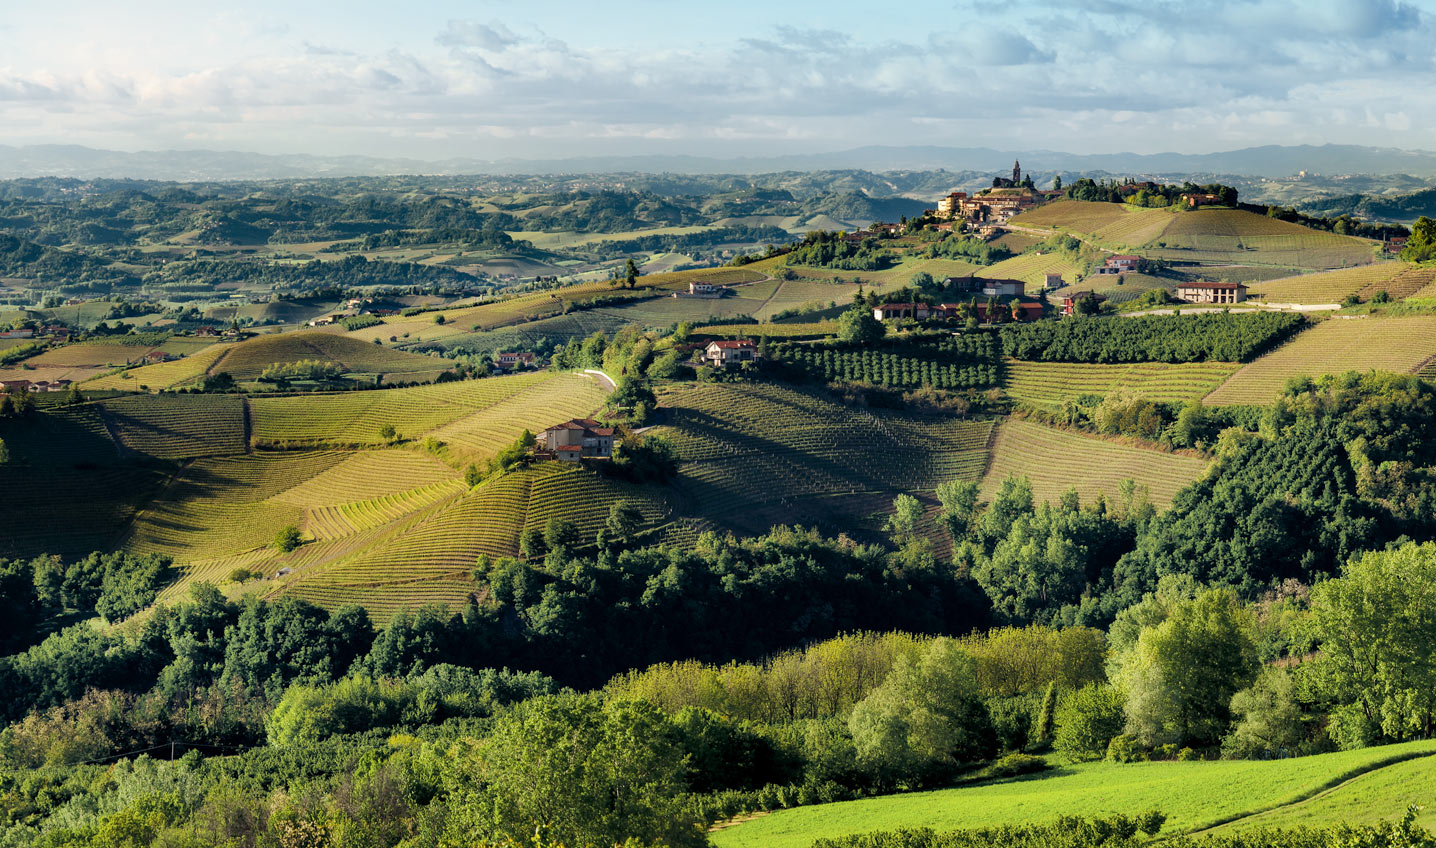 <strong>ITALIA</strong> / <strong>LANGHE</strong>